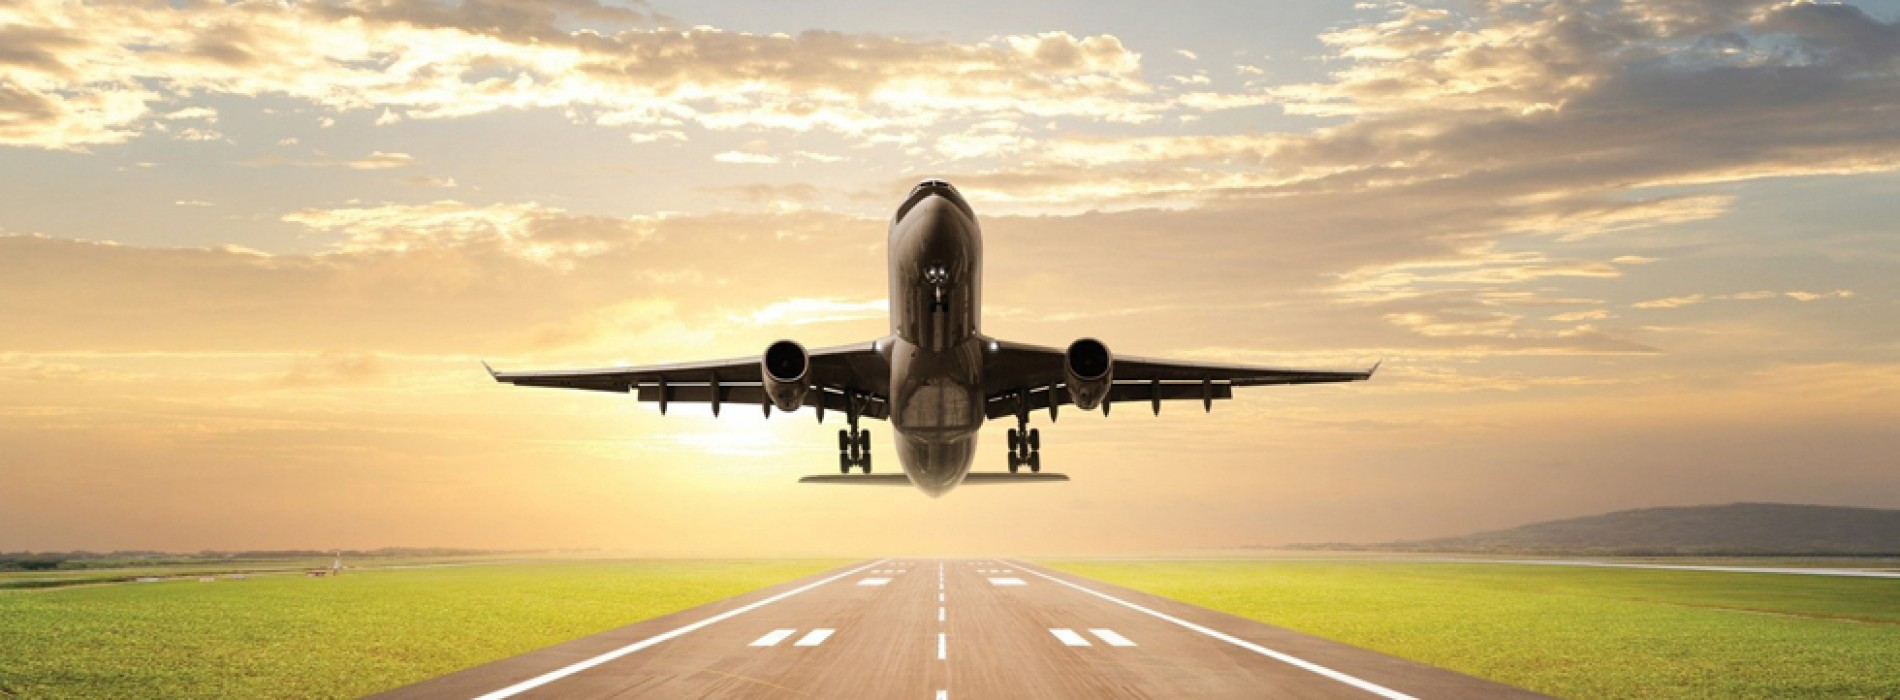 Aviation ministry demands proof to allow more flights to Dubai